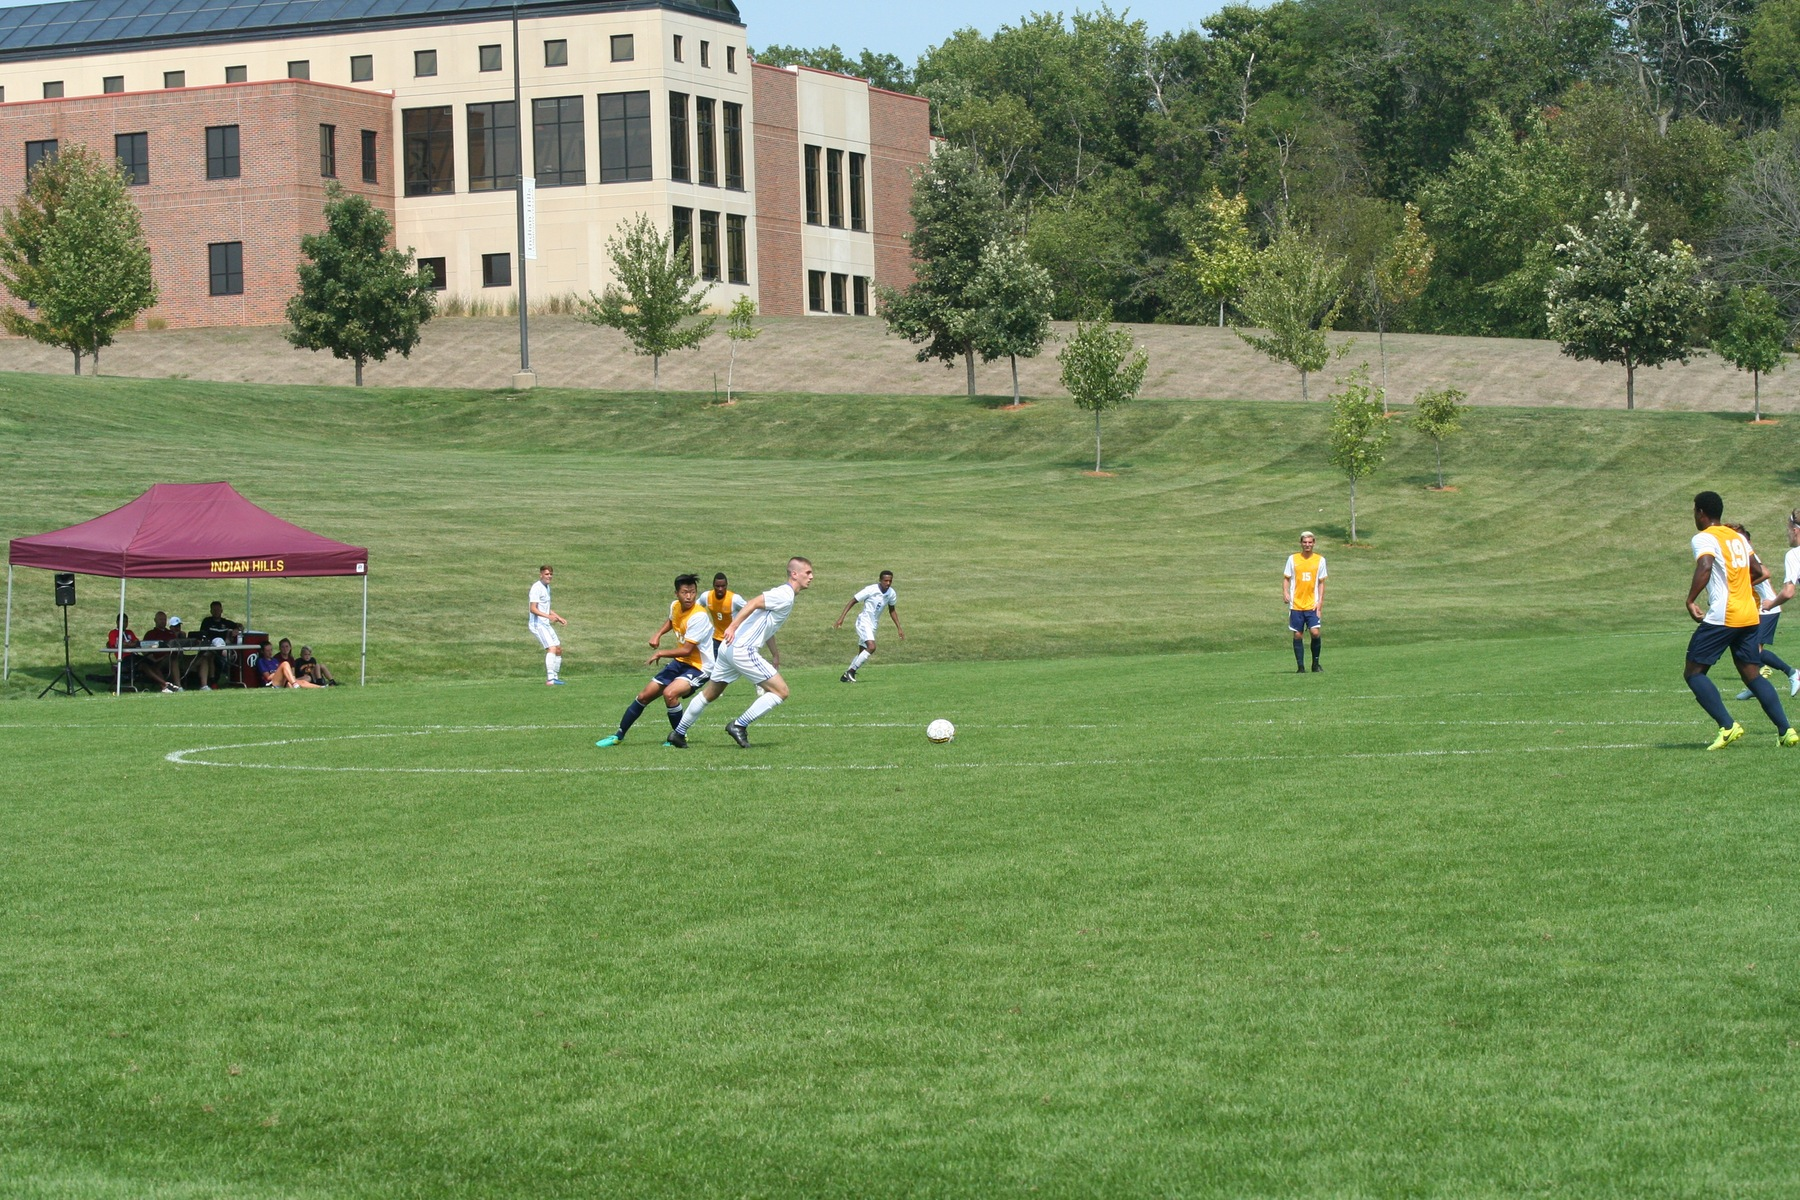 Lakers lose Conference opener 3-2 to Northeast Community College